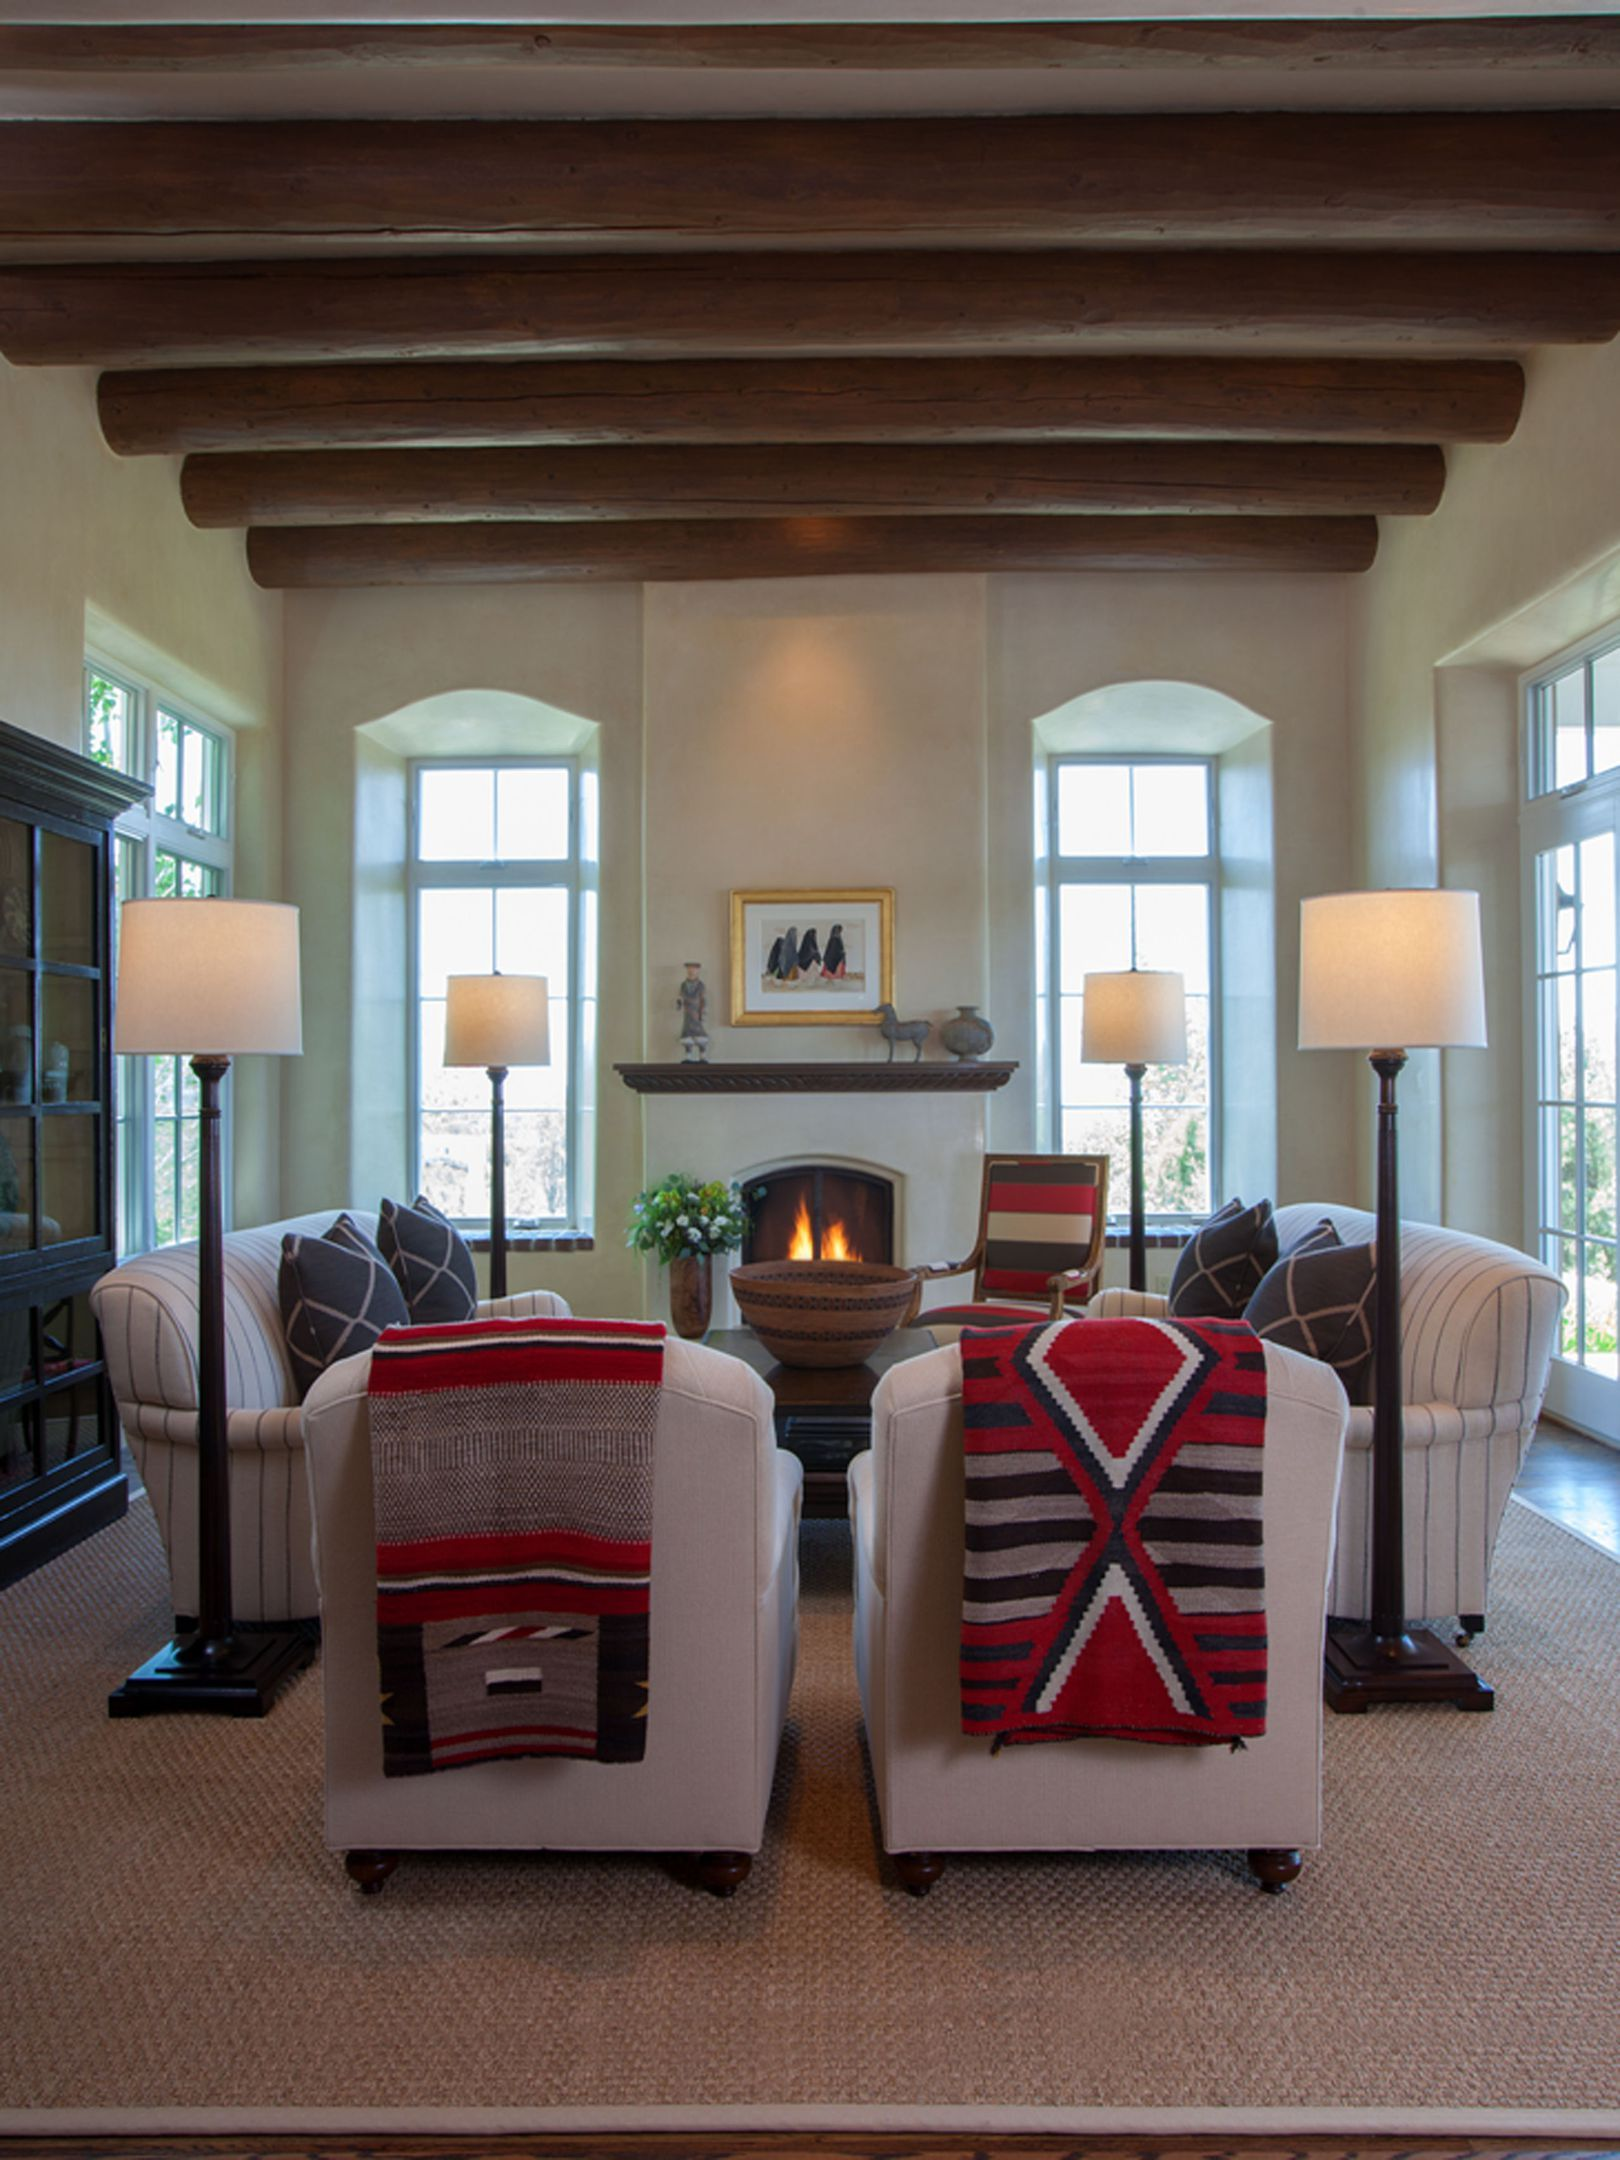 Step Inside a Stunning Adobe Home in Santa Fe | Interior ...